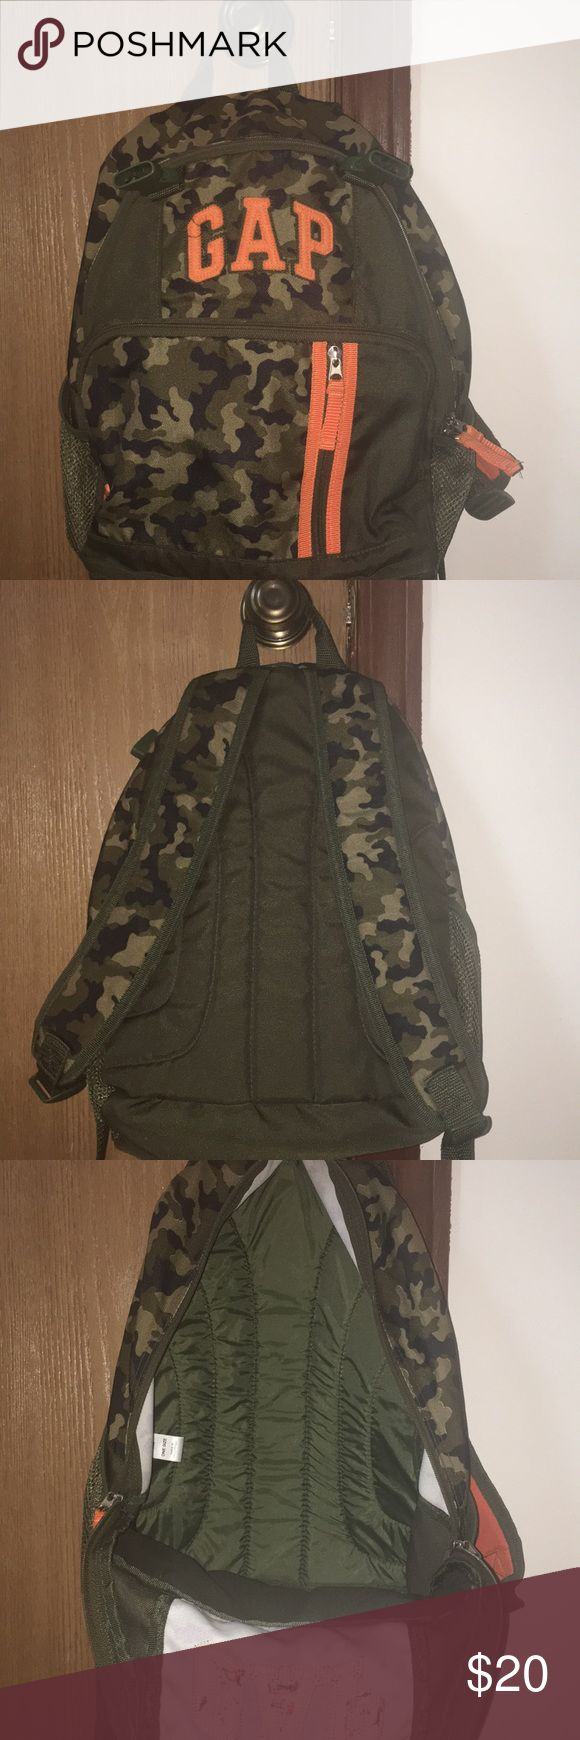 Gap camouflage backpack This backpack is in like new condition. My son carried it for a few months during preschool, before he got a new bag. It's the perfect size for a preschooler or kindergartener. Comes from a clean pet/smoke free home. GAP Accessories Bags